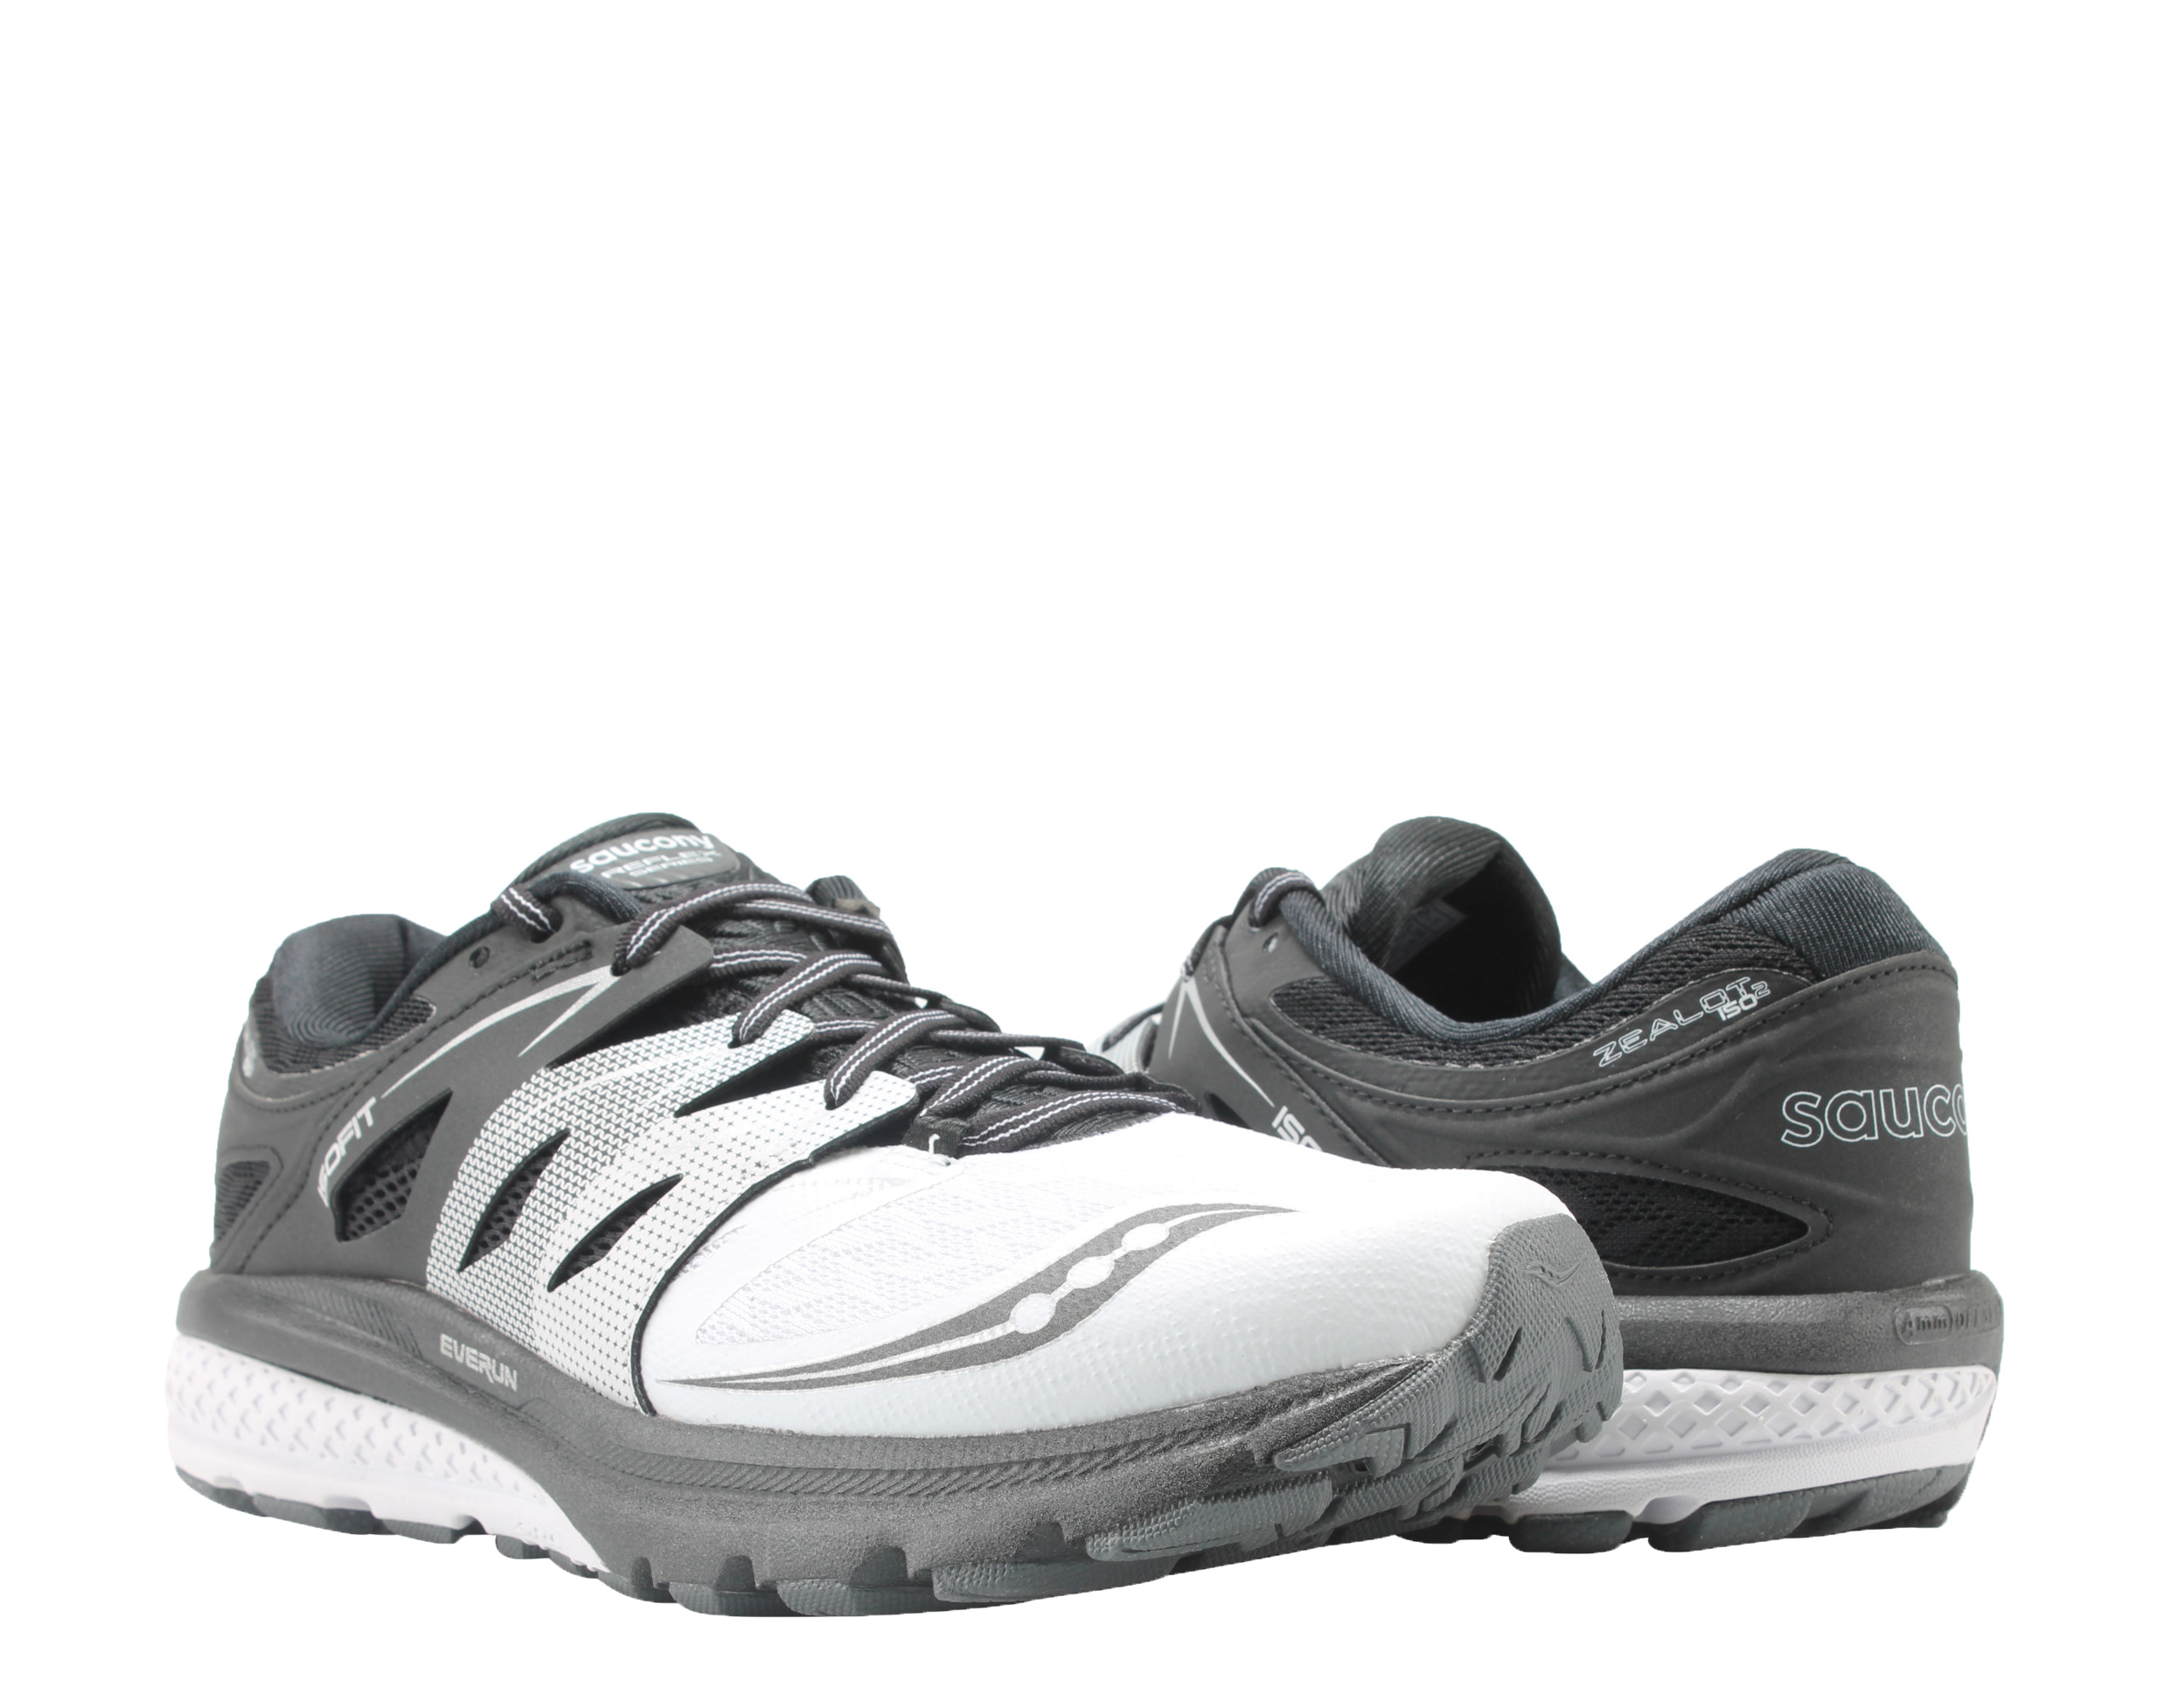 Saucony Zealot ISO 2 White Black Silver Men's Running Shoes S20332-1 by Saucony